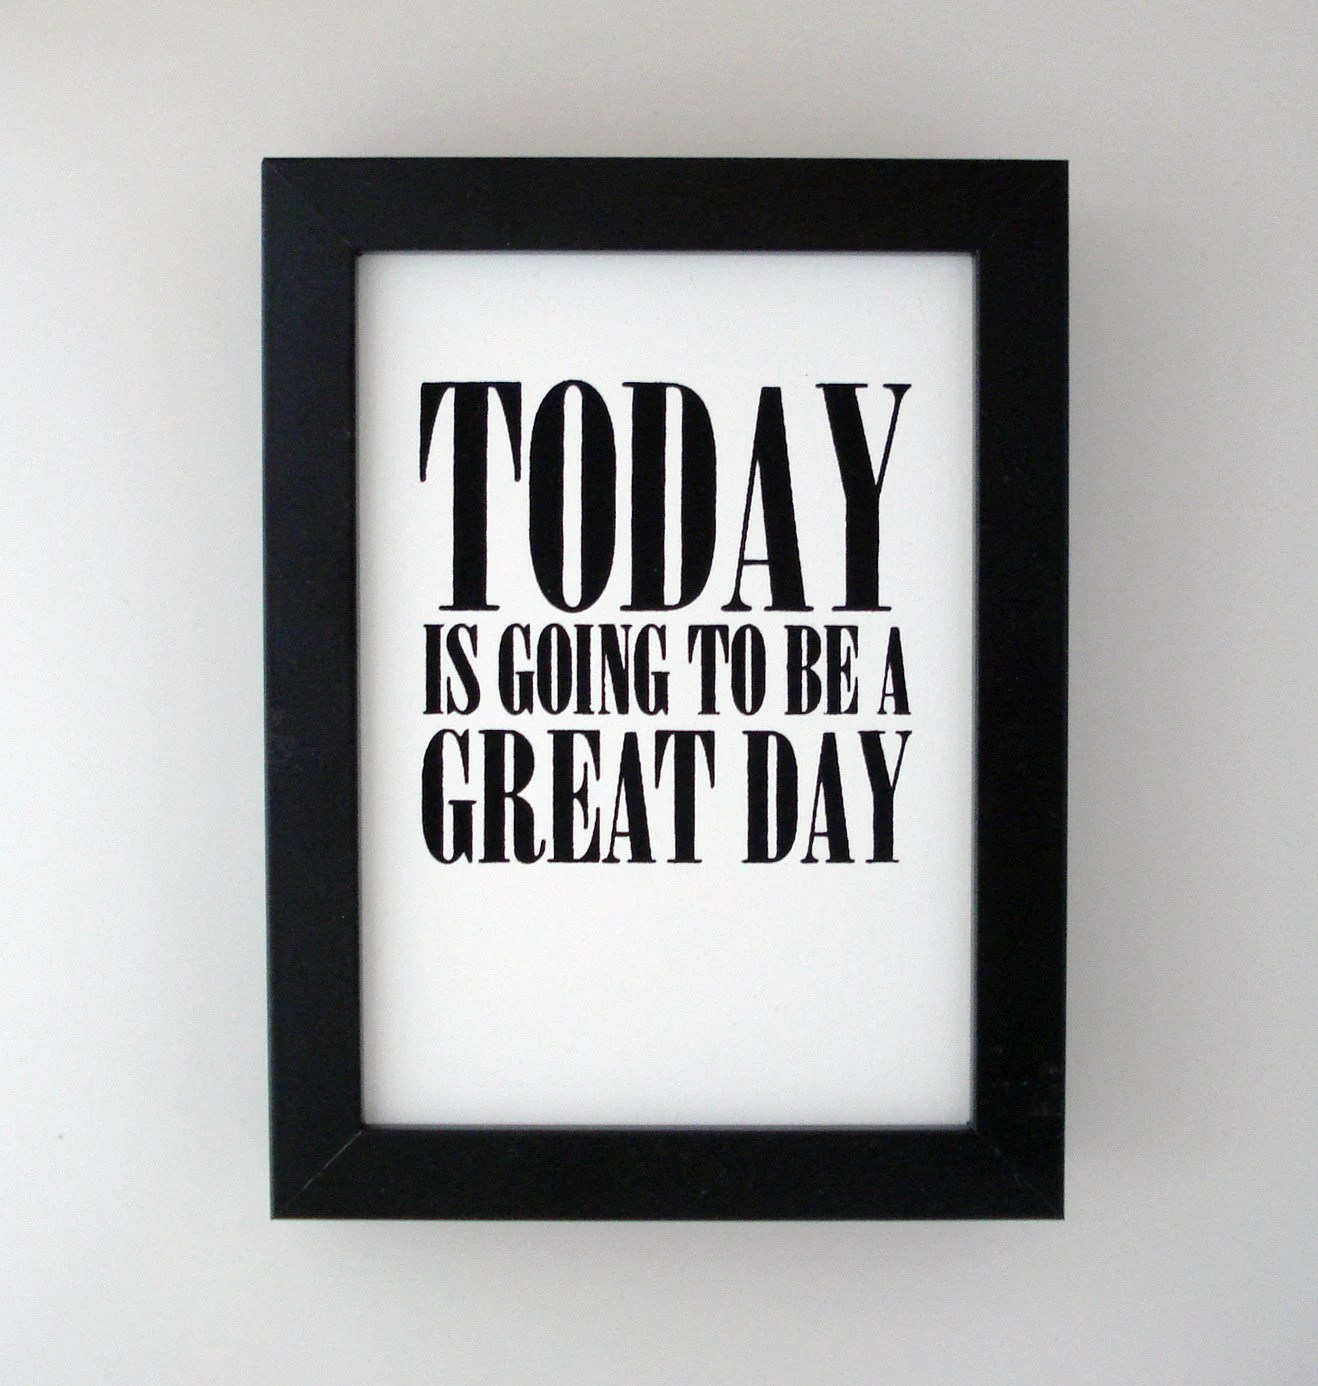 today is going to be a great day mini print - black